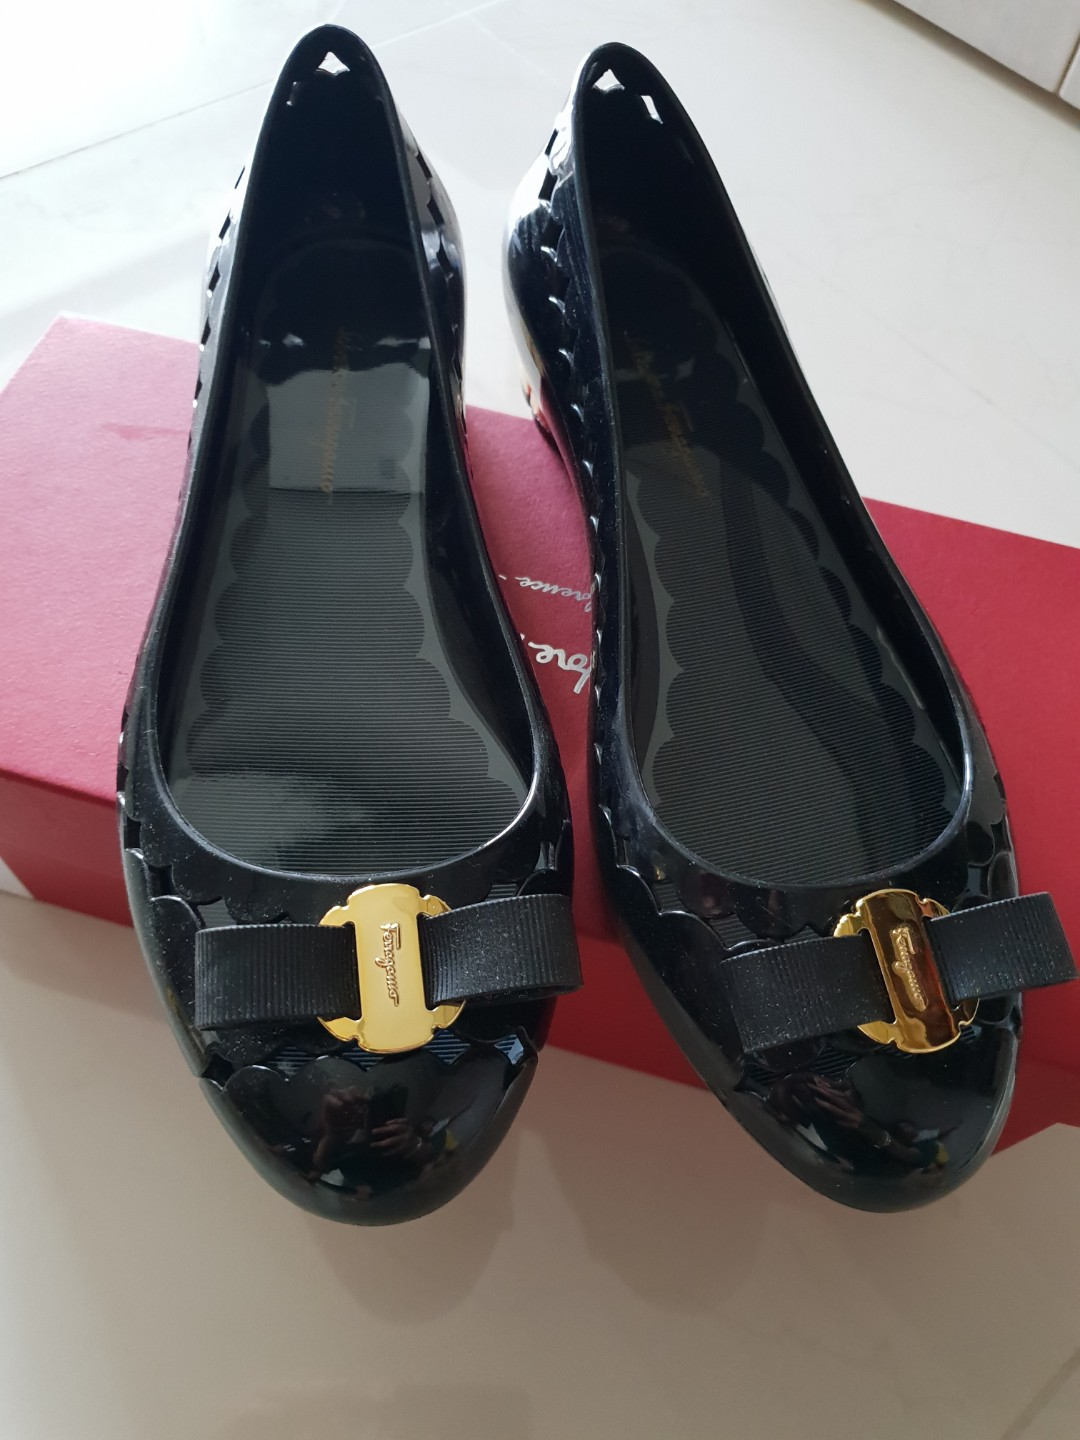 dc93df89b39 Authentic Salvatore Ferragamo Bow Jelly Ballerina Shoes (Black ...